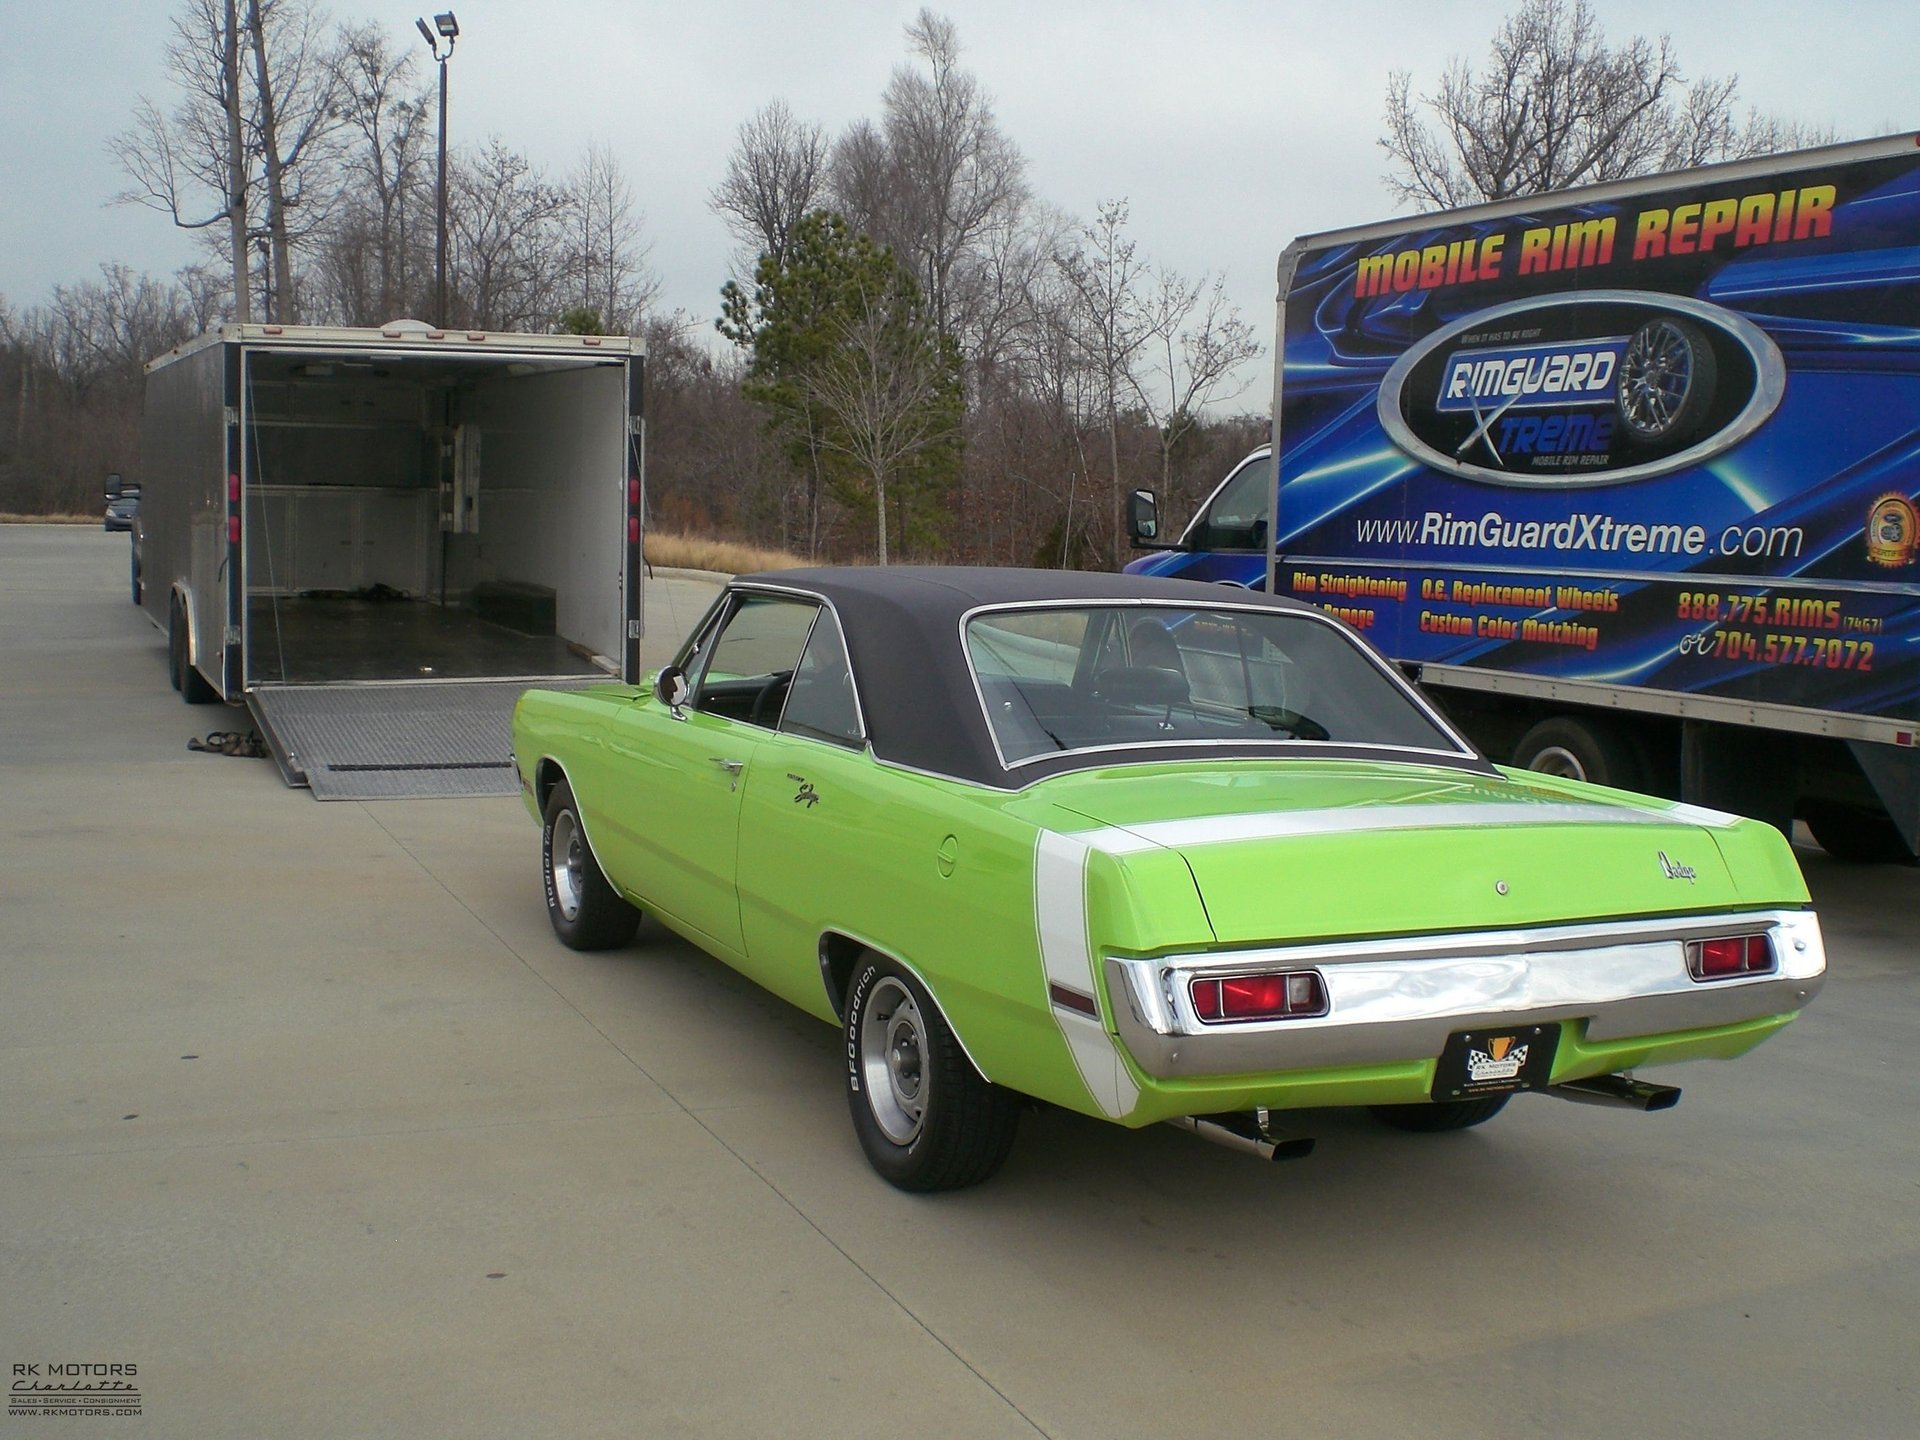 132600 1970 Dodge Dart Rk Motors Classic Cars And Muscle Cars For Sale